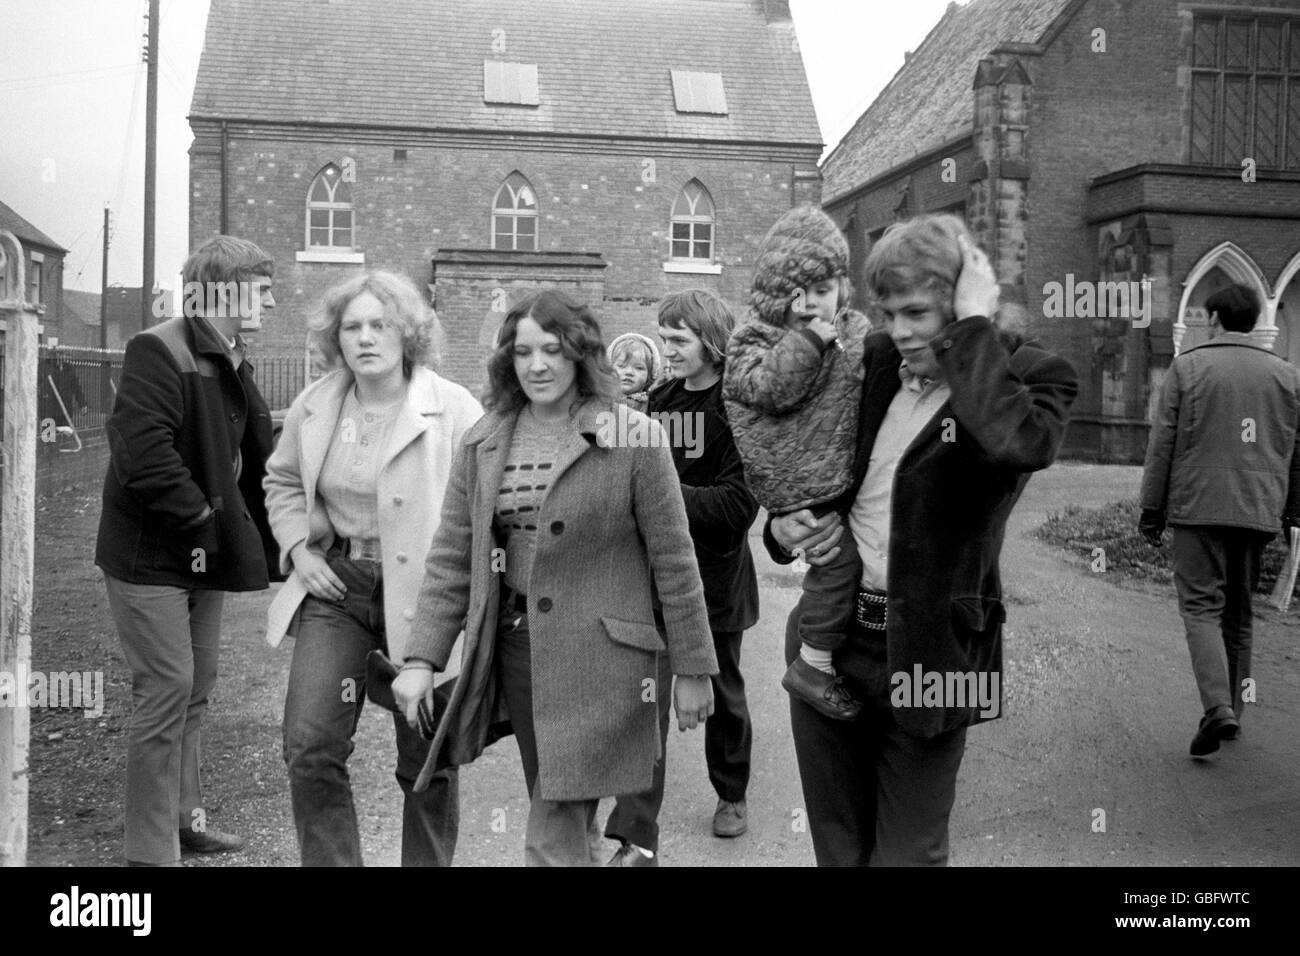 Miner's Strike - Protest - Stafford - 1972 - Stock Image